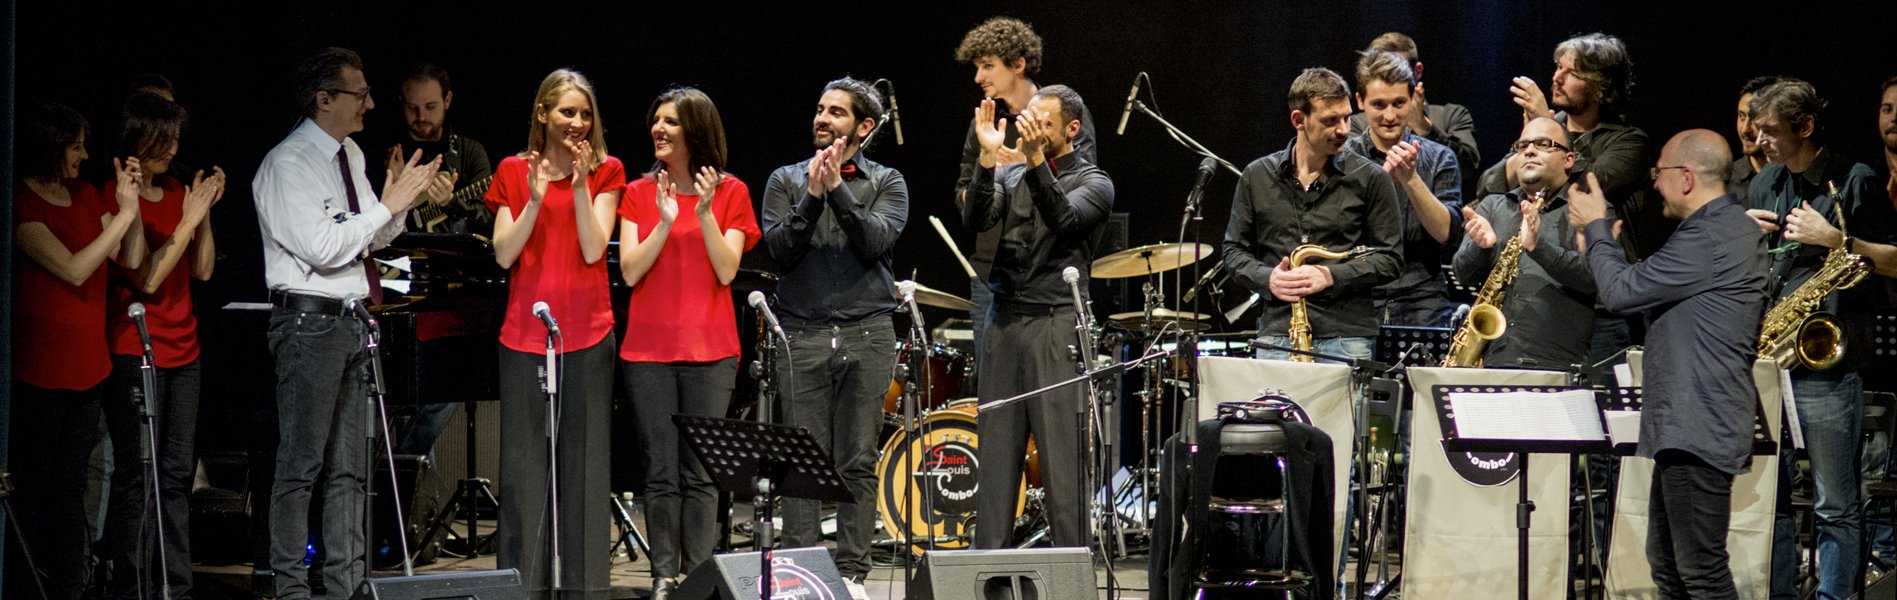 Applausi finali per la Saint Louis Big Band